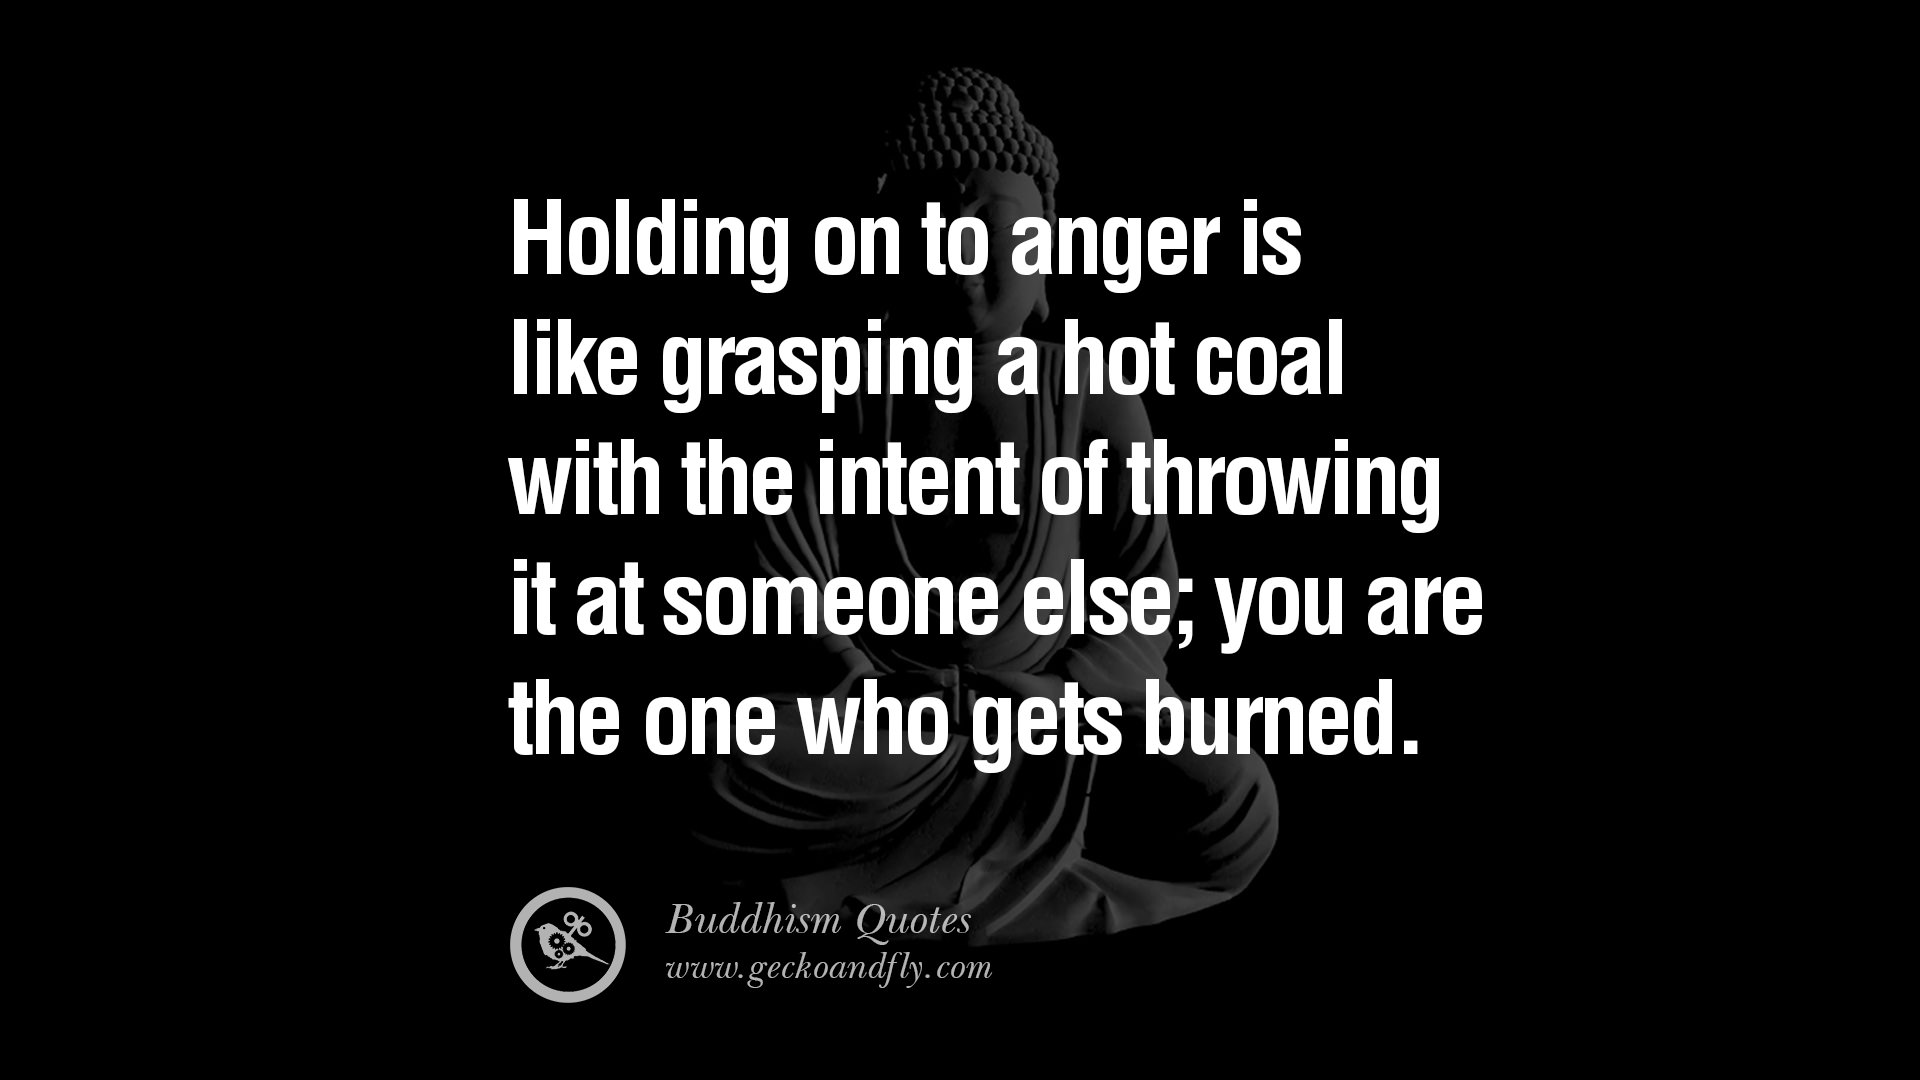 Best Buddha Quotes 13 Zen Buddhism Quotes On Love Anger Management And Salvation